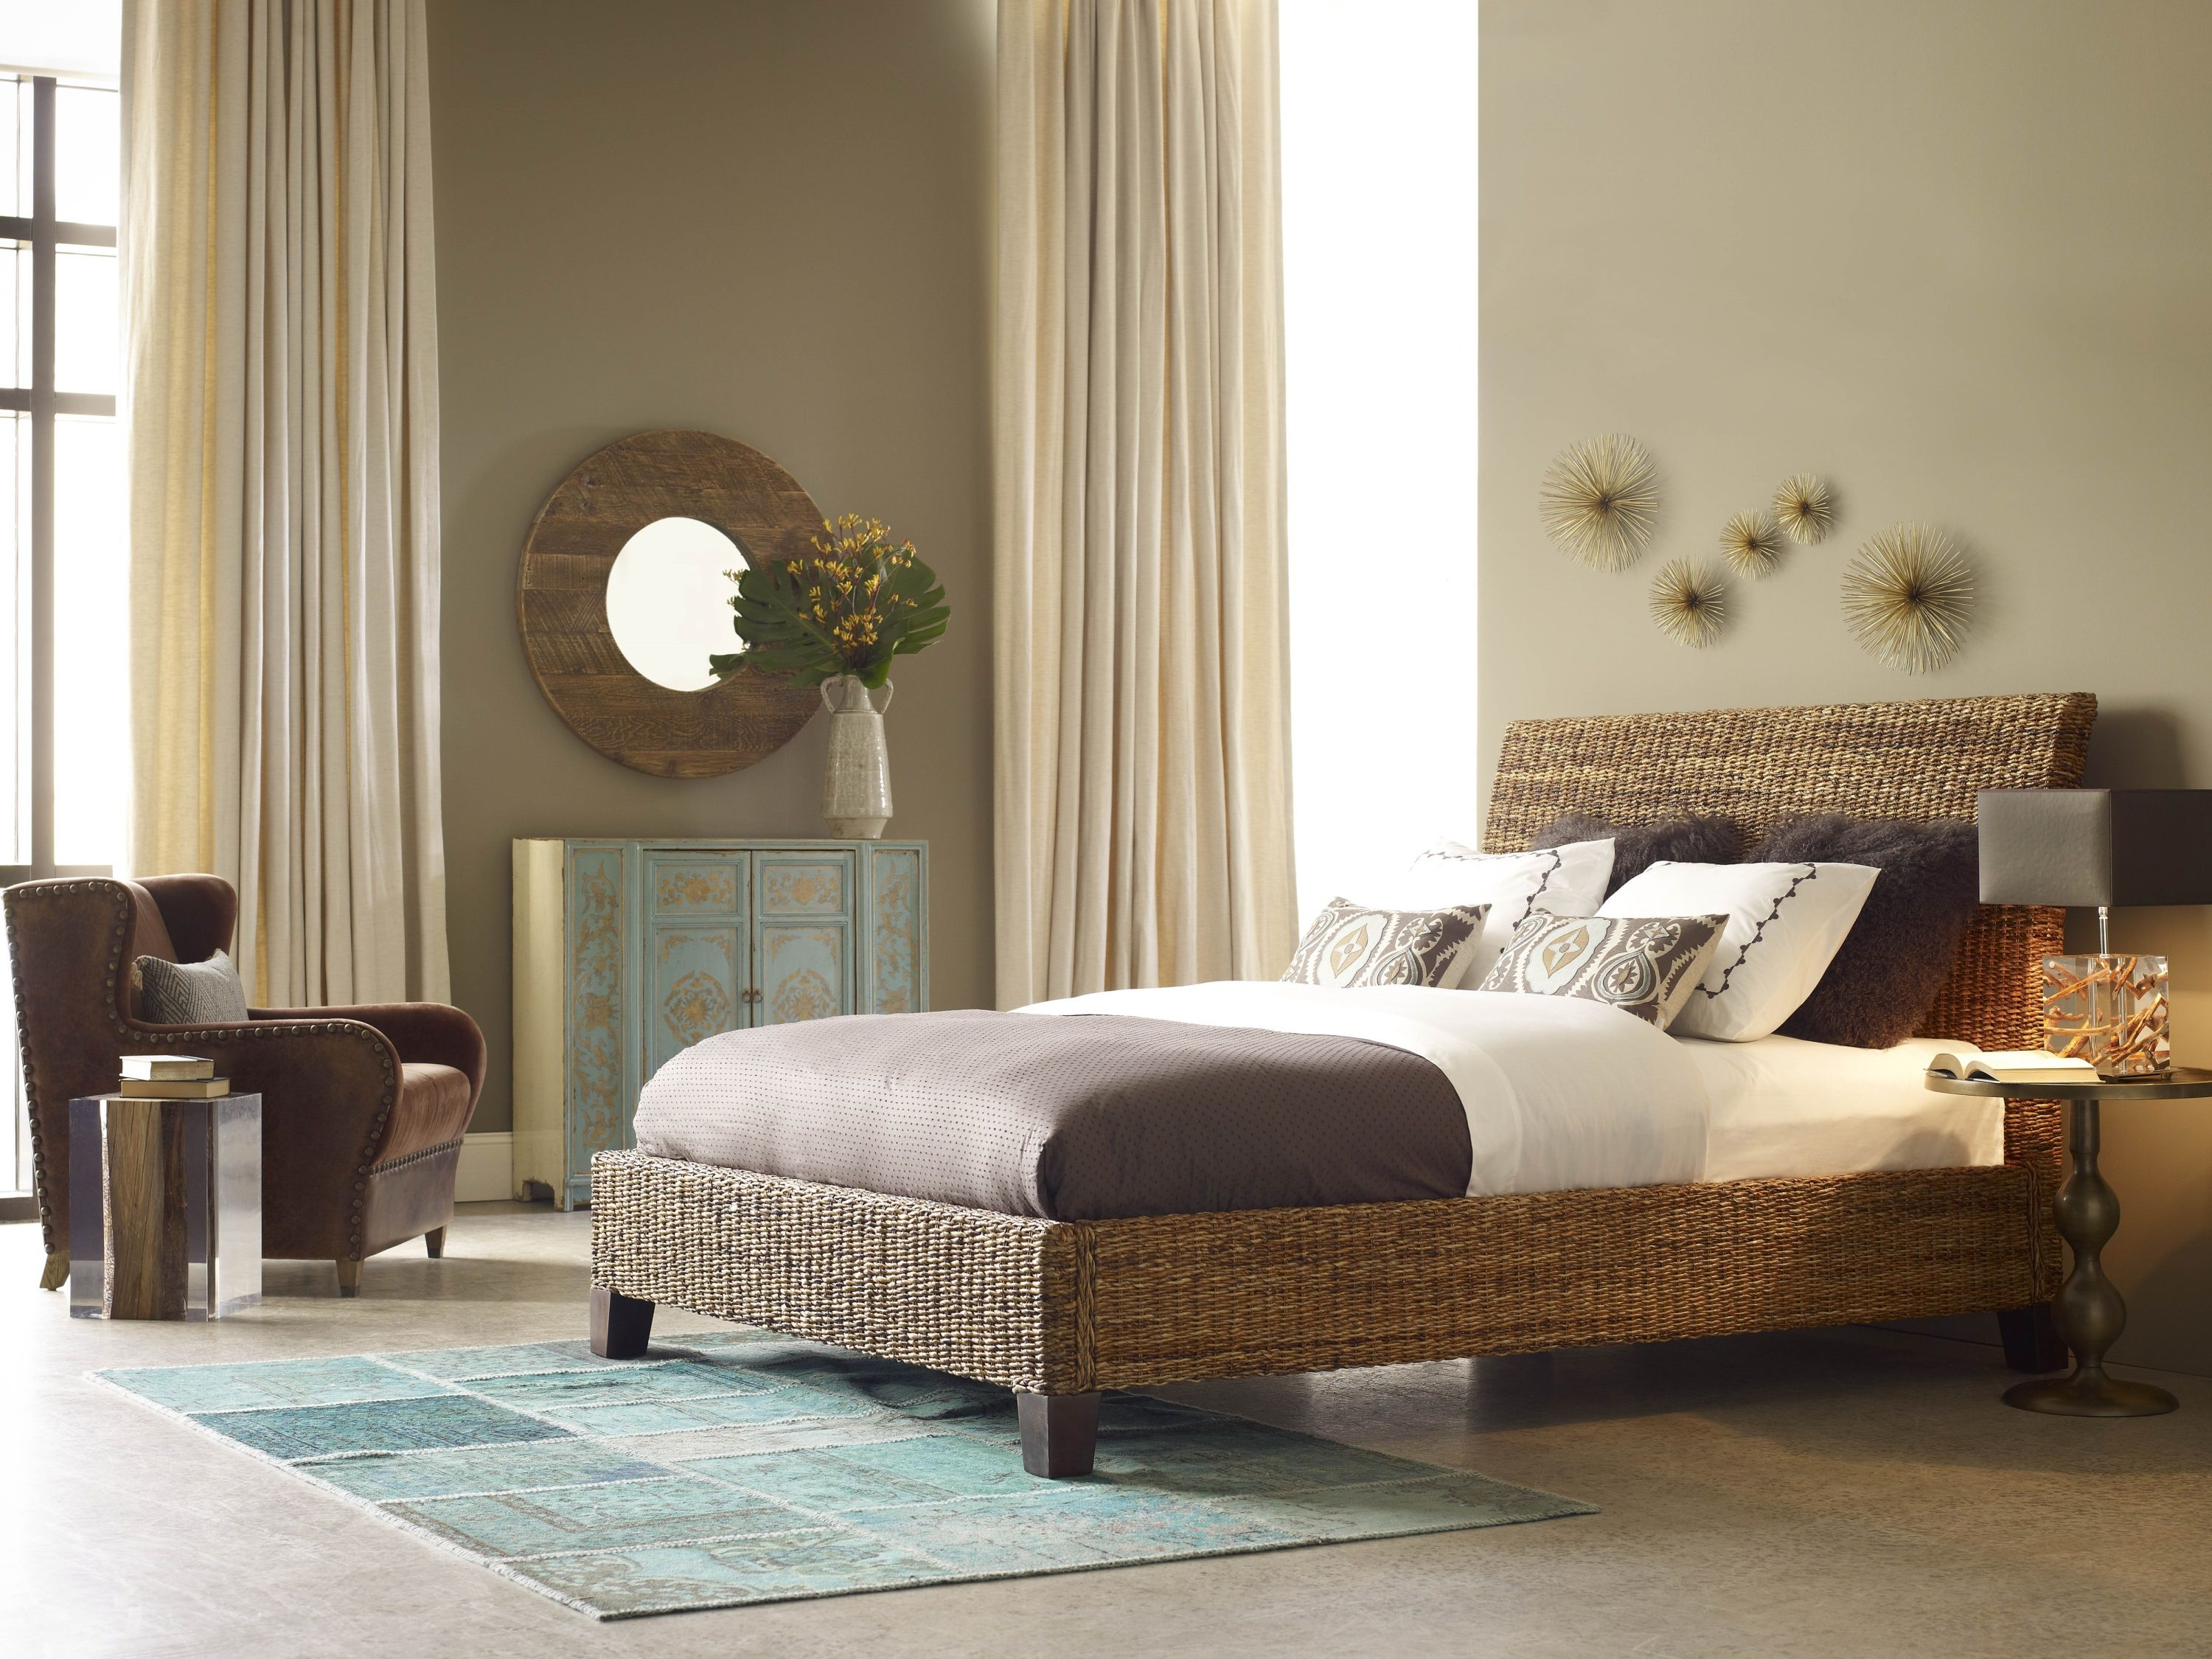 Four Hands Seagrass Bed Available At Www Gardiners Com Home